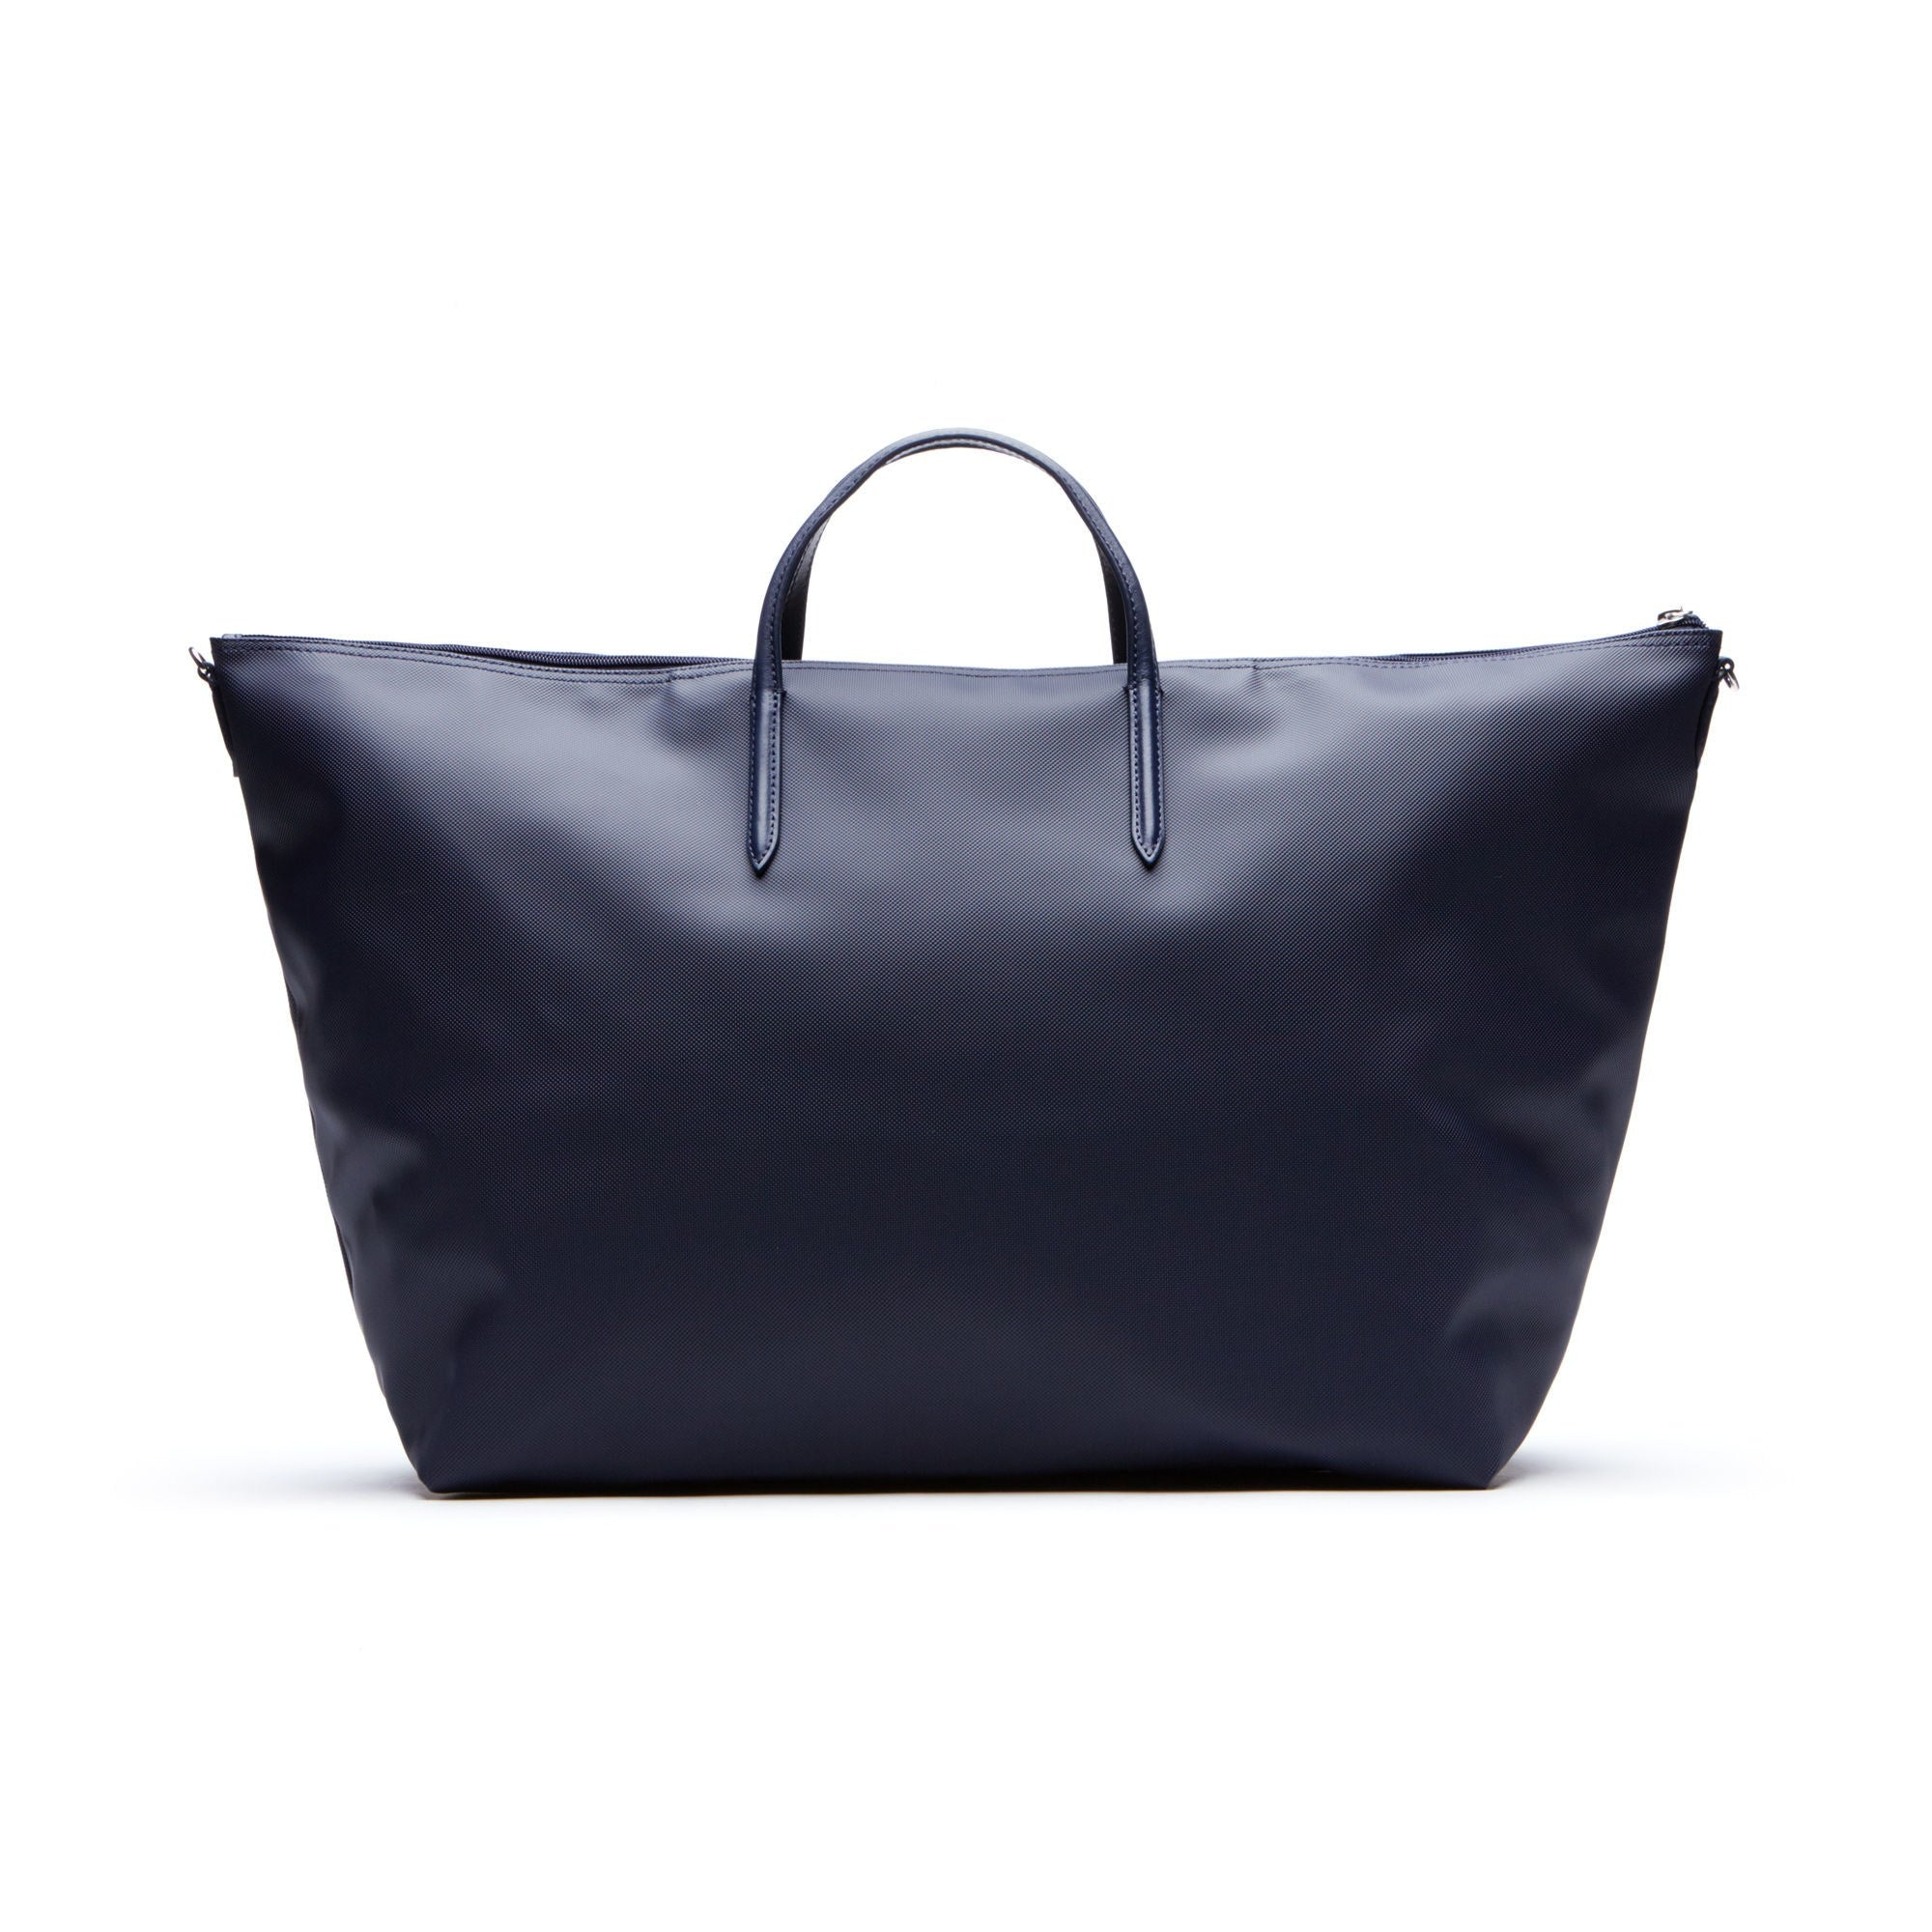 Women's L.12.12 Concept Weekend Tote Bag NF1947PO ECLIPSE